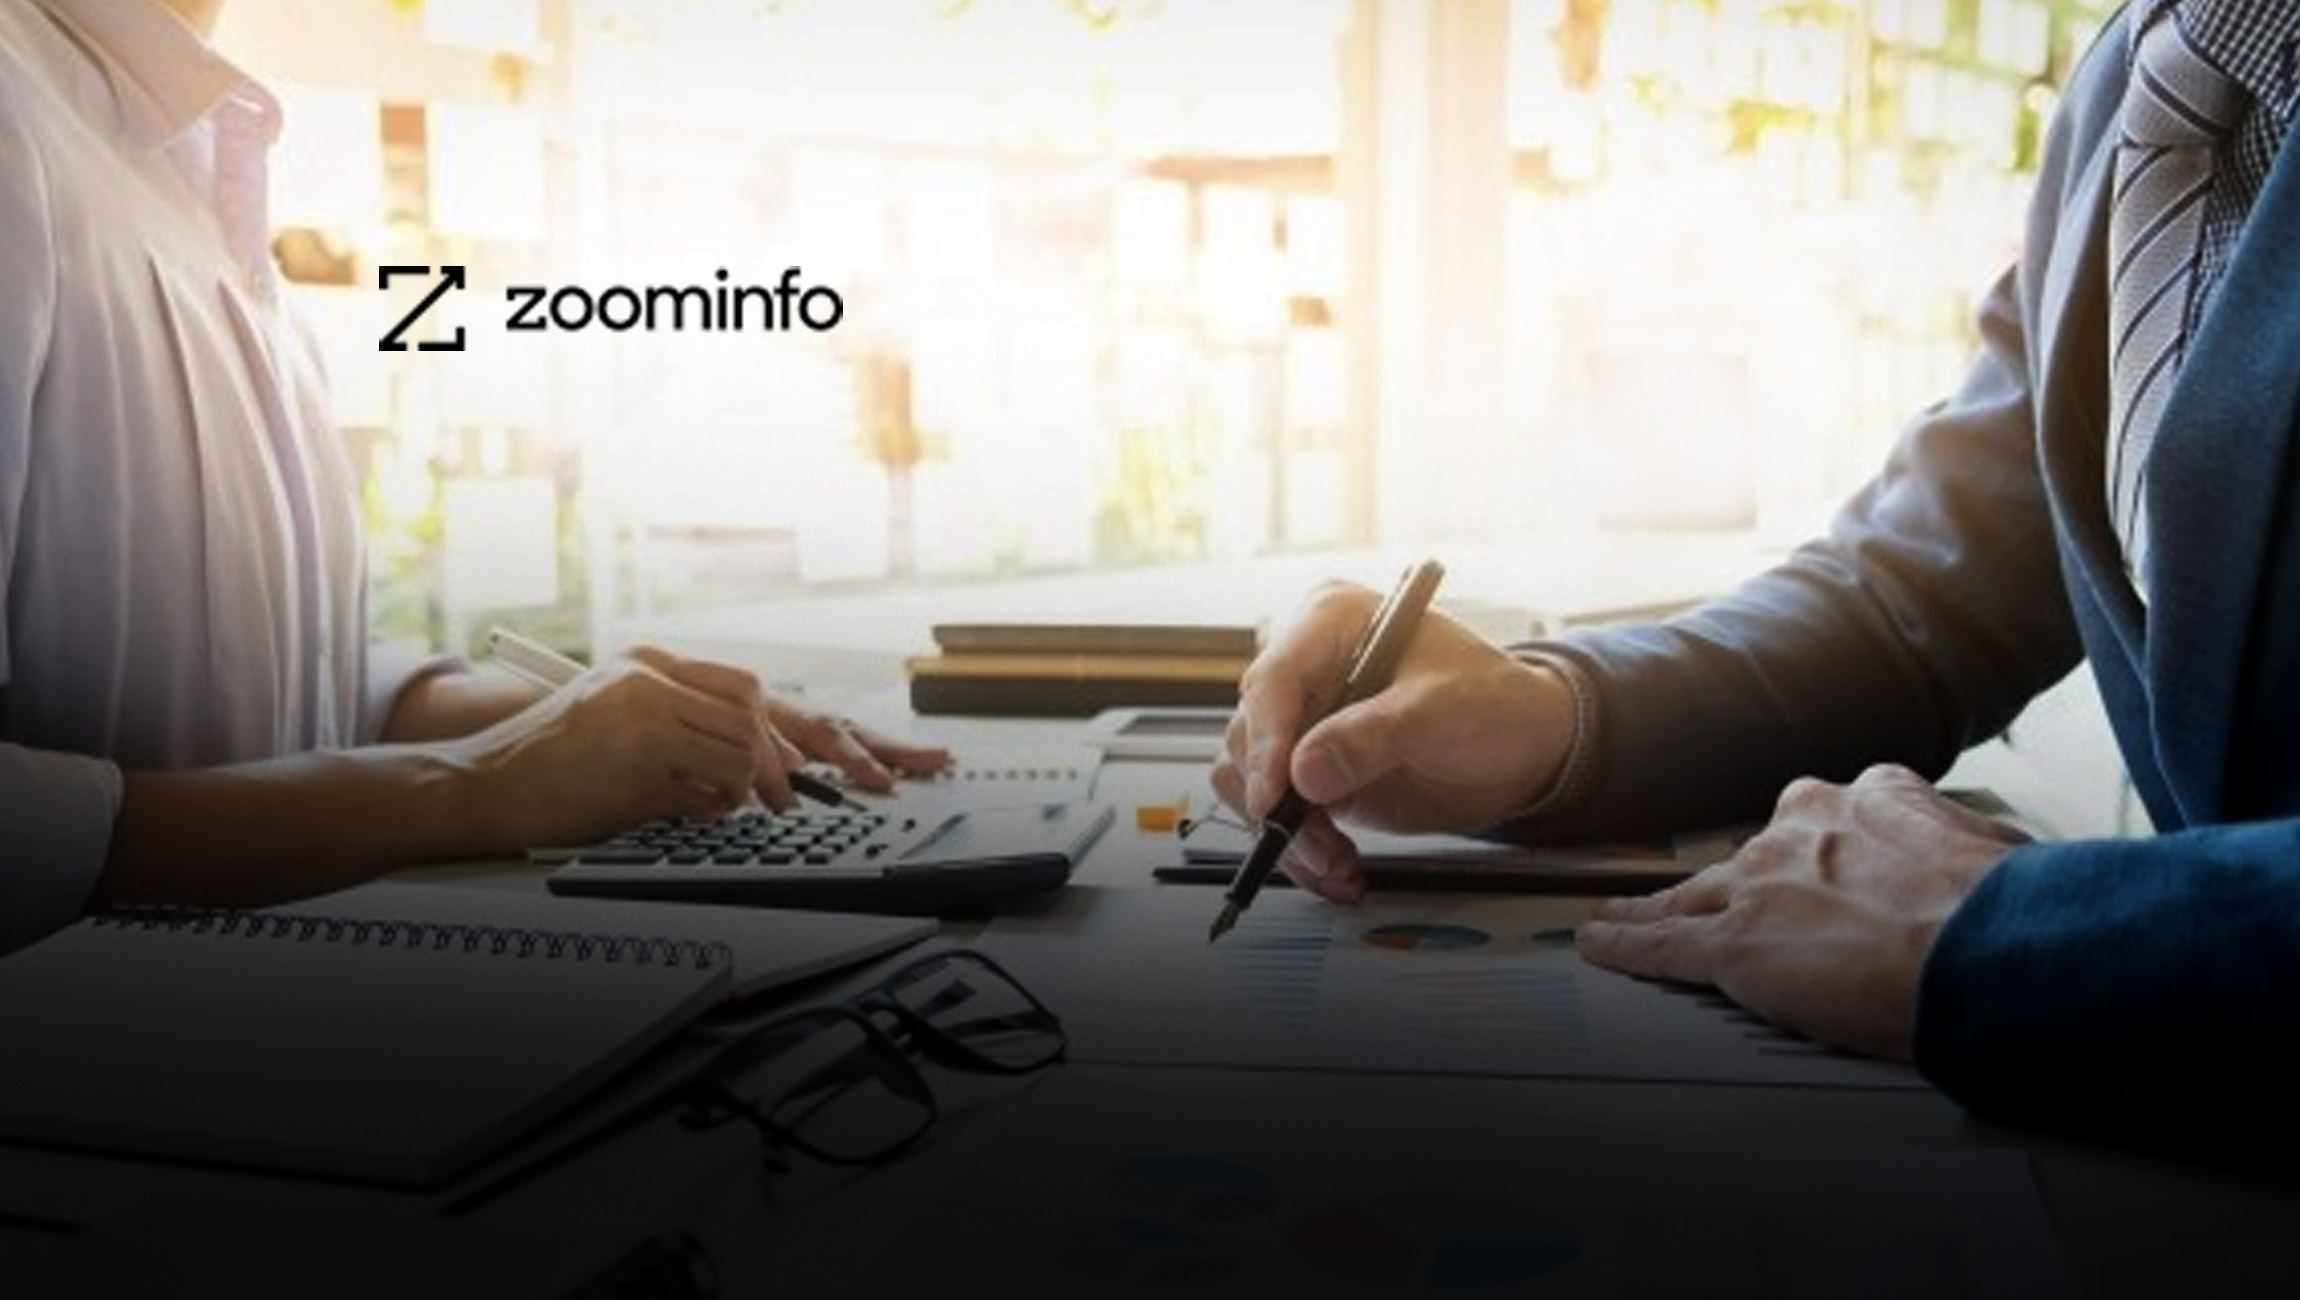 ZoomInfo Announces Secondary Offering of Shares of Class A Common Stock